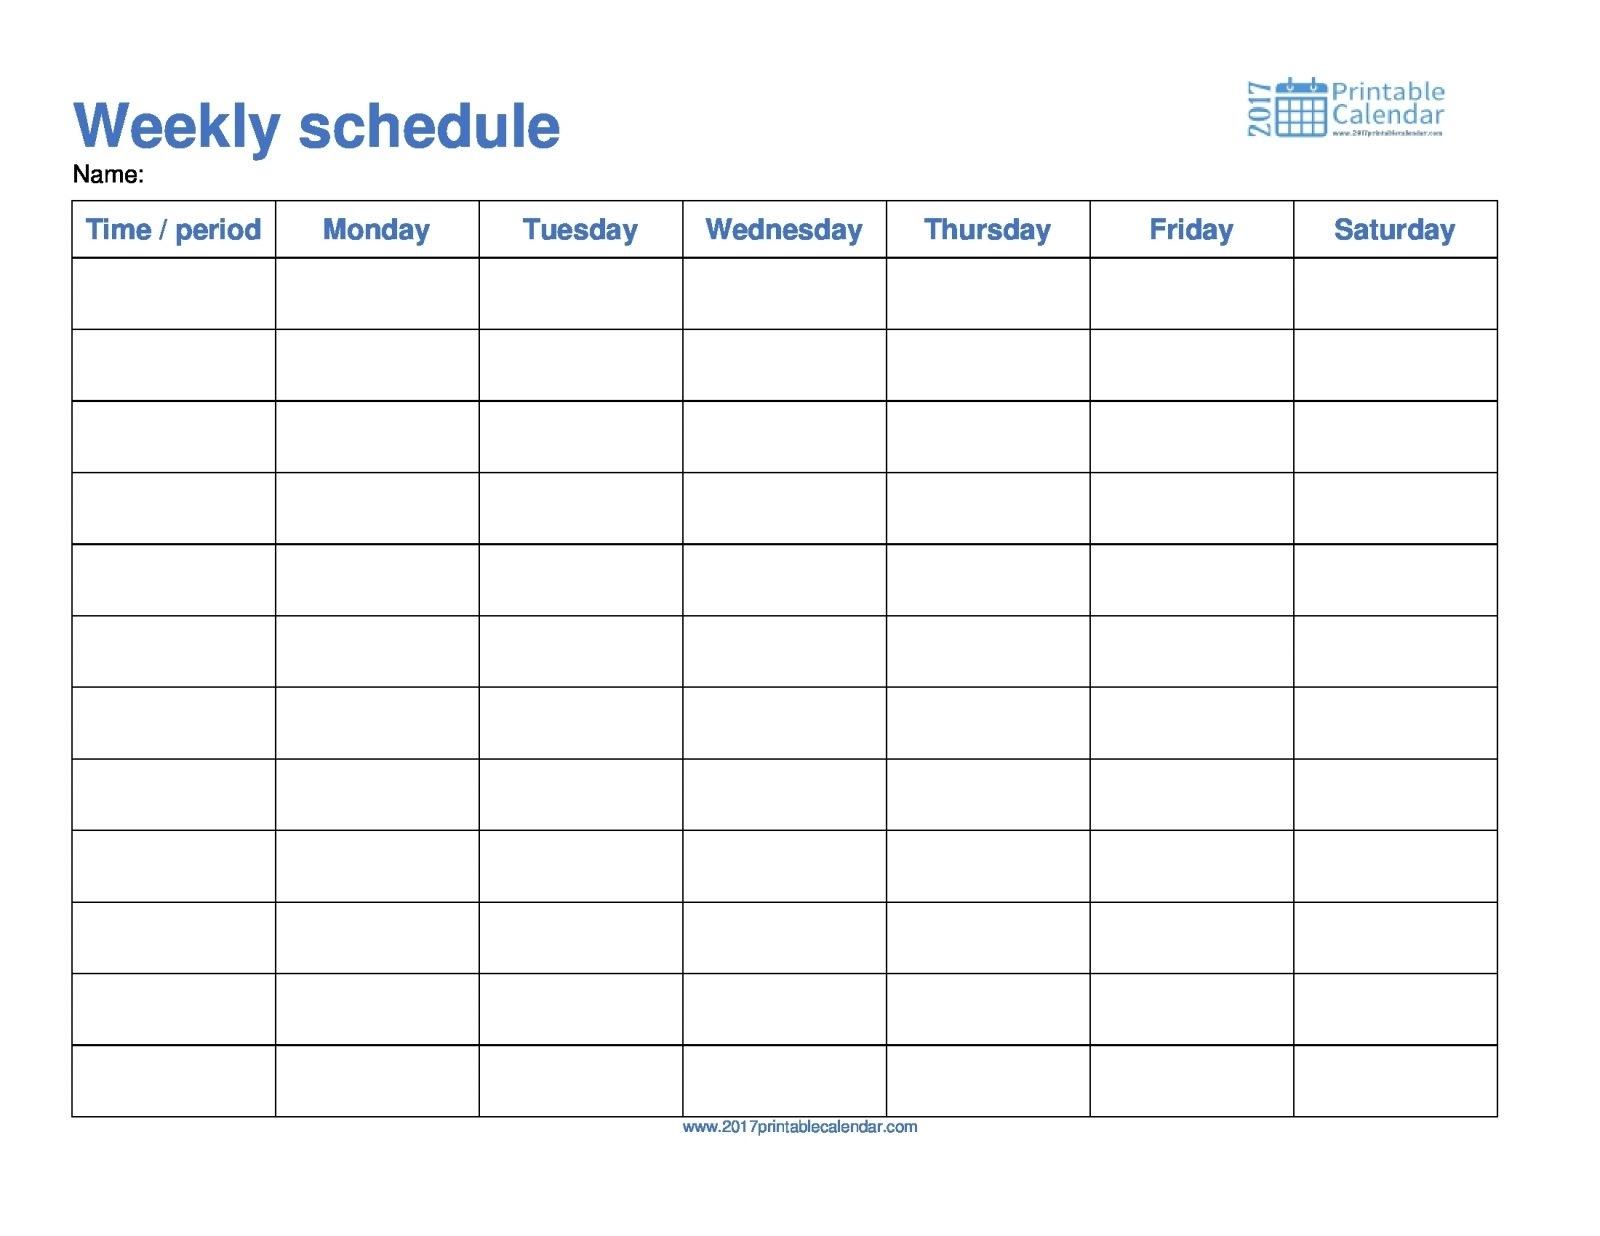 Monday Through Friday Weekly Calendar Template Word Onthly | Smorad regarding Monday Though Friday Timed Schedule